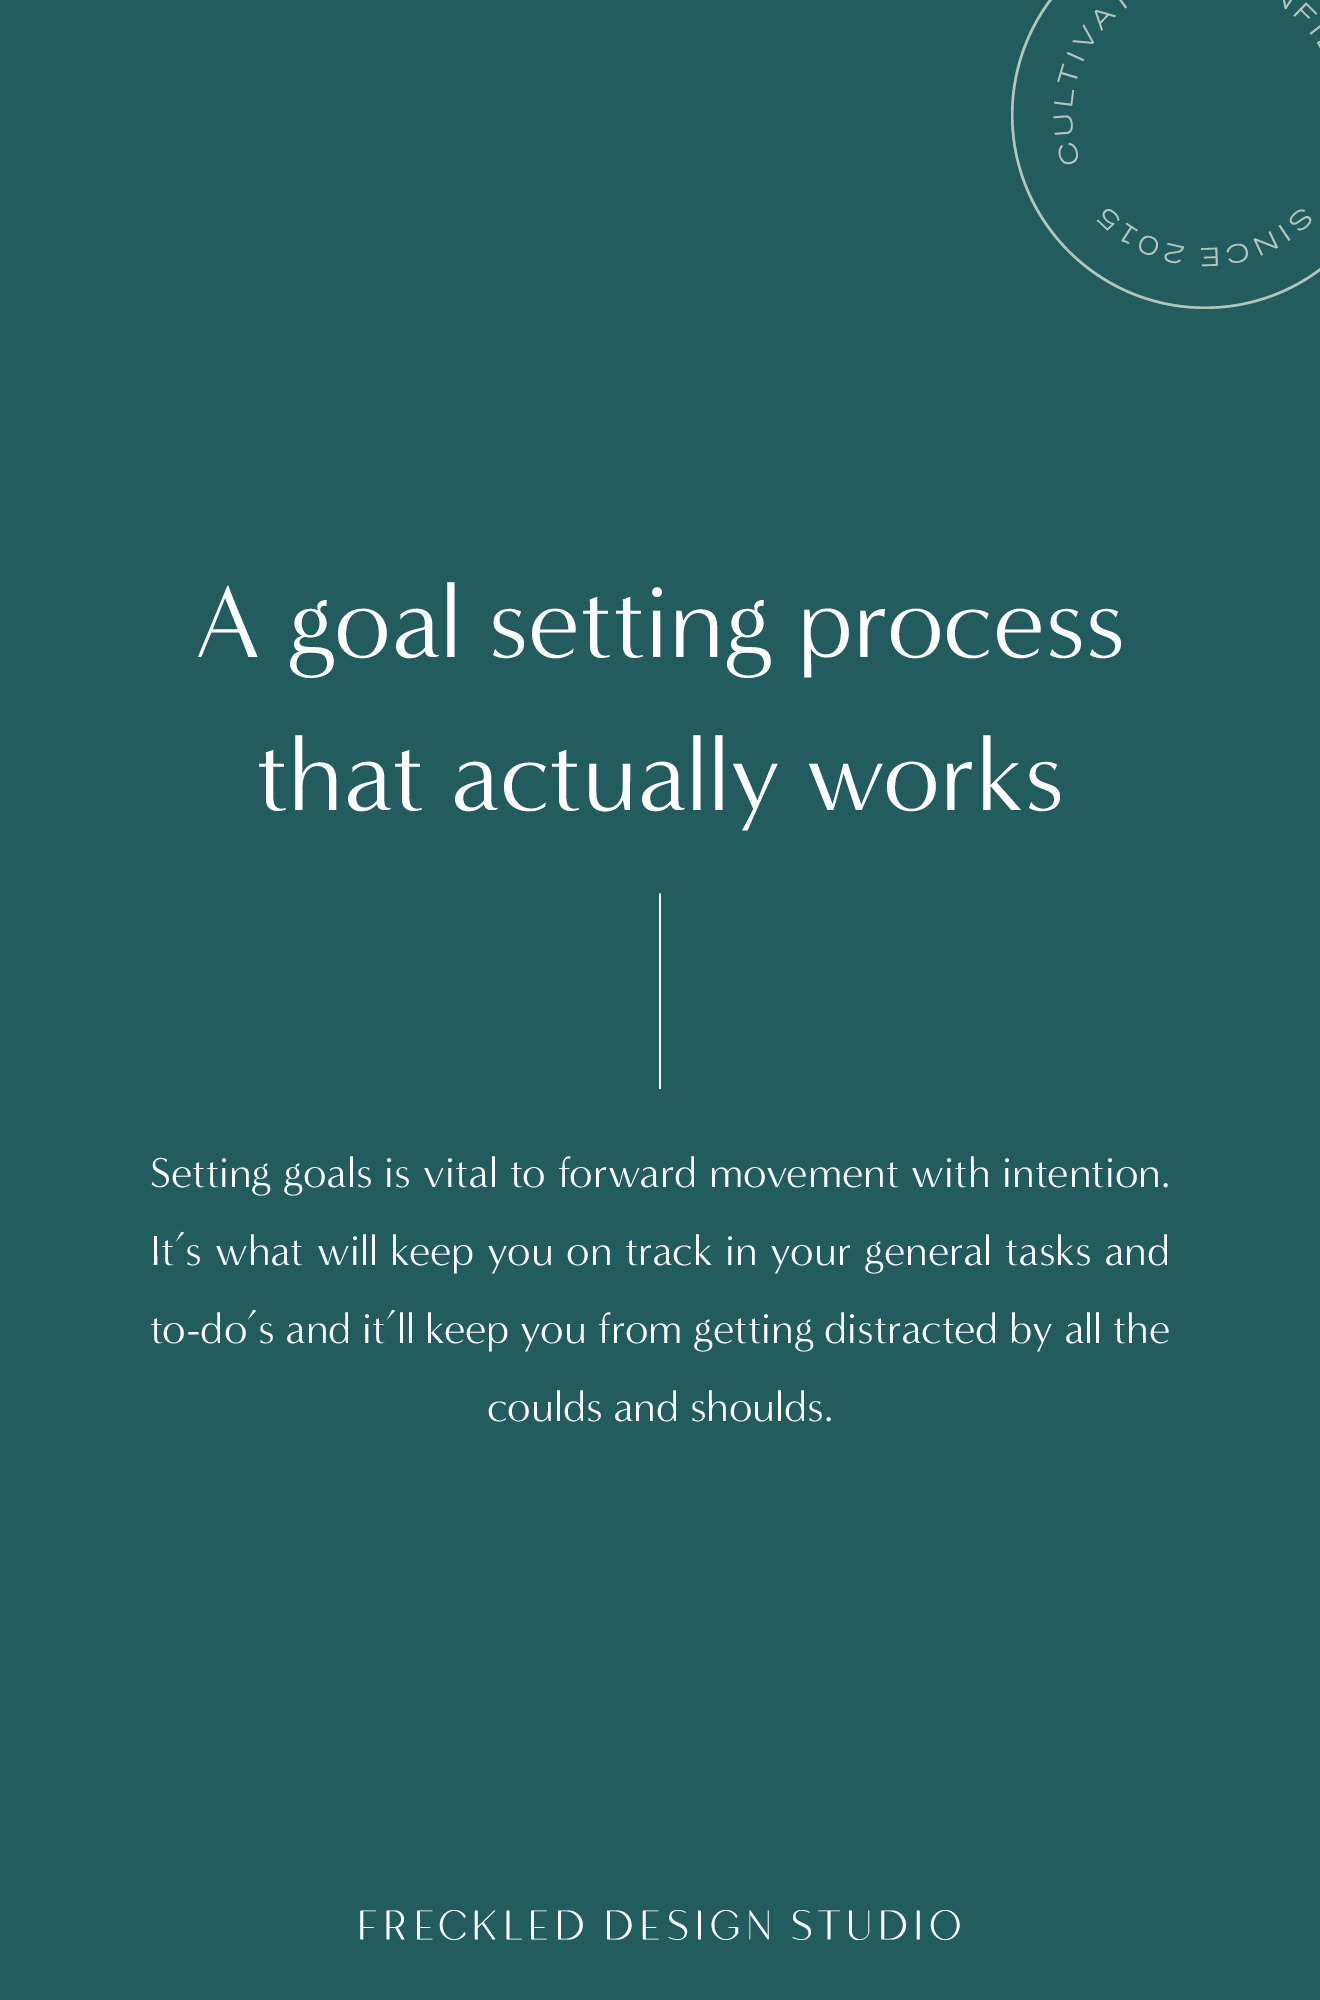 A goal setting process that actually works2.jpg